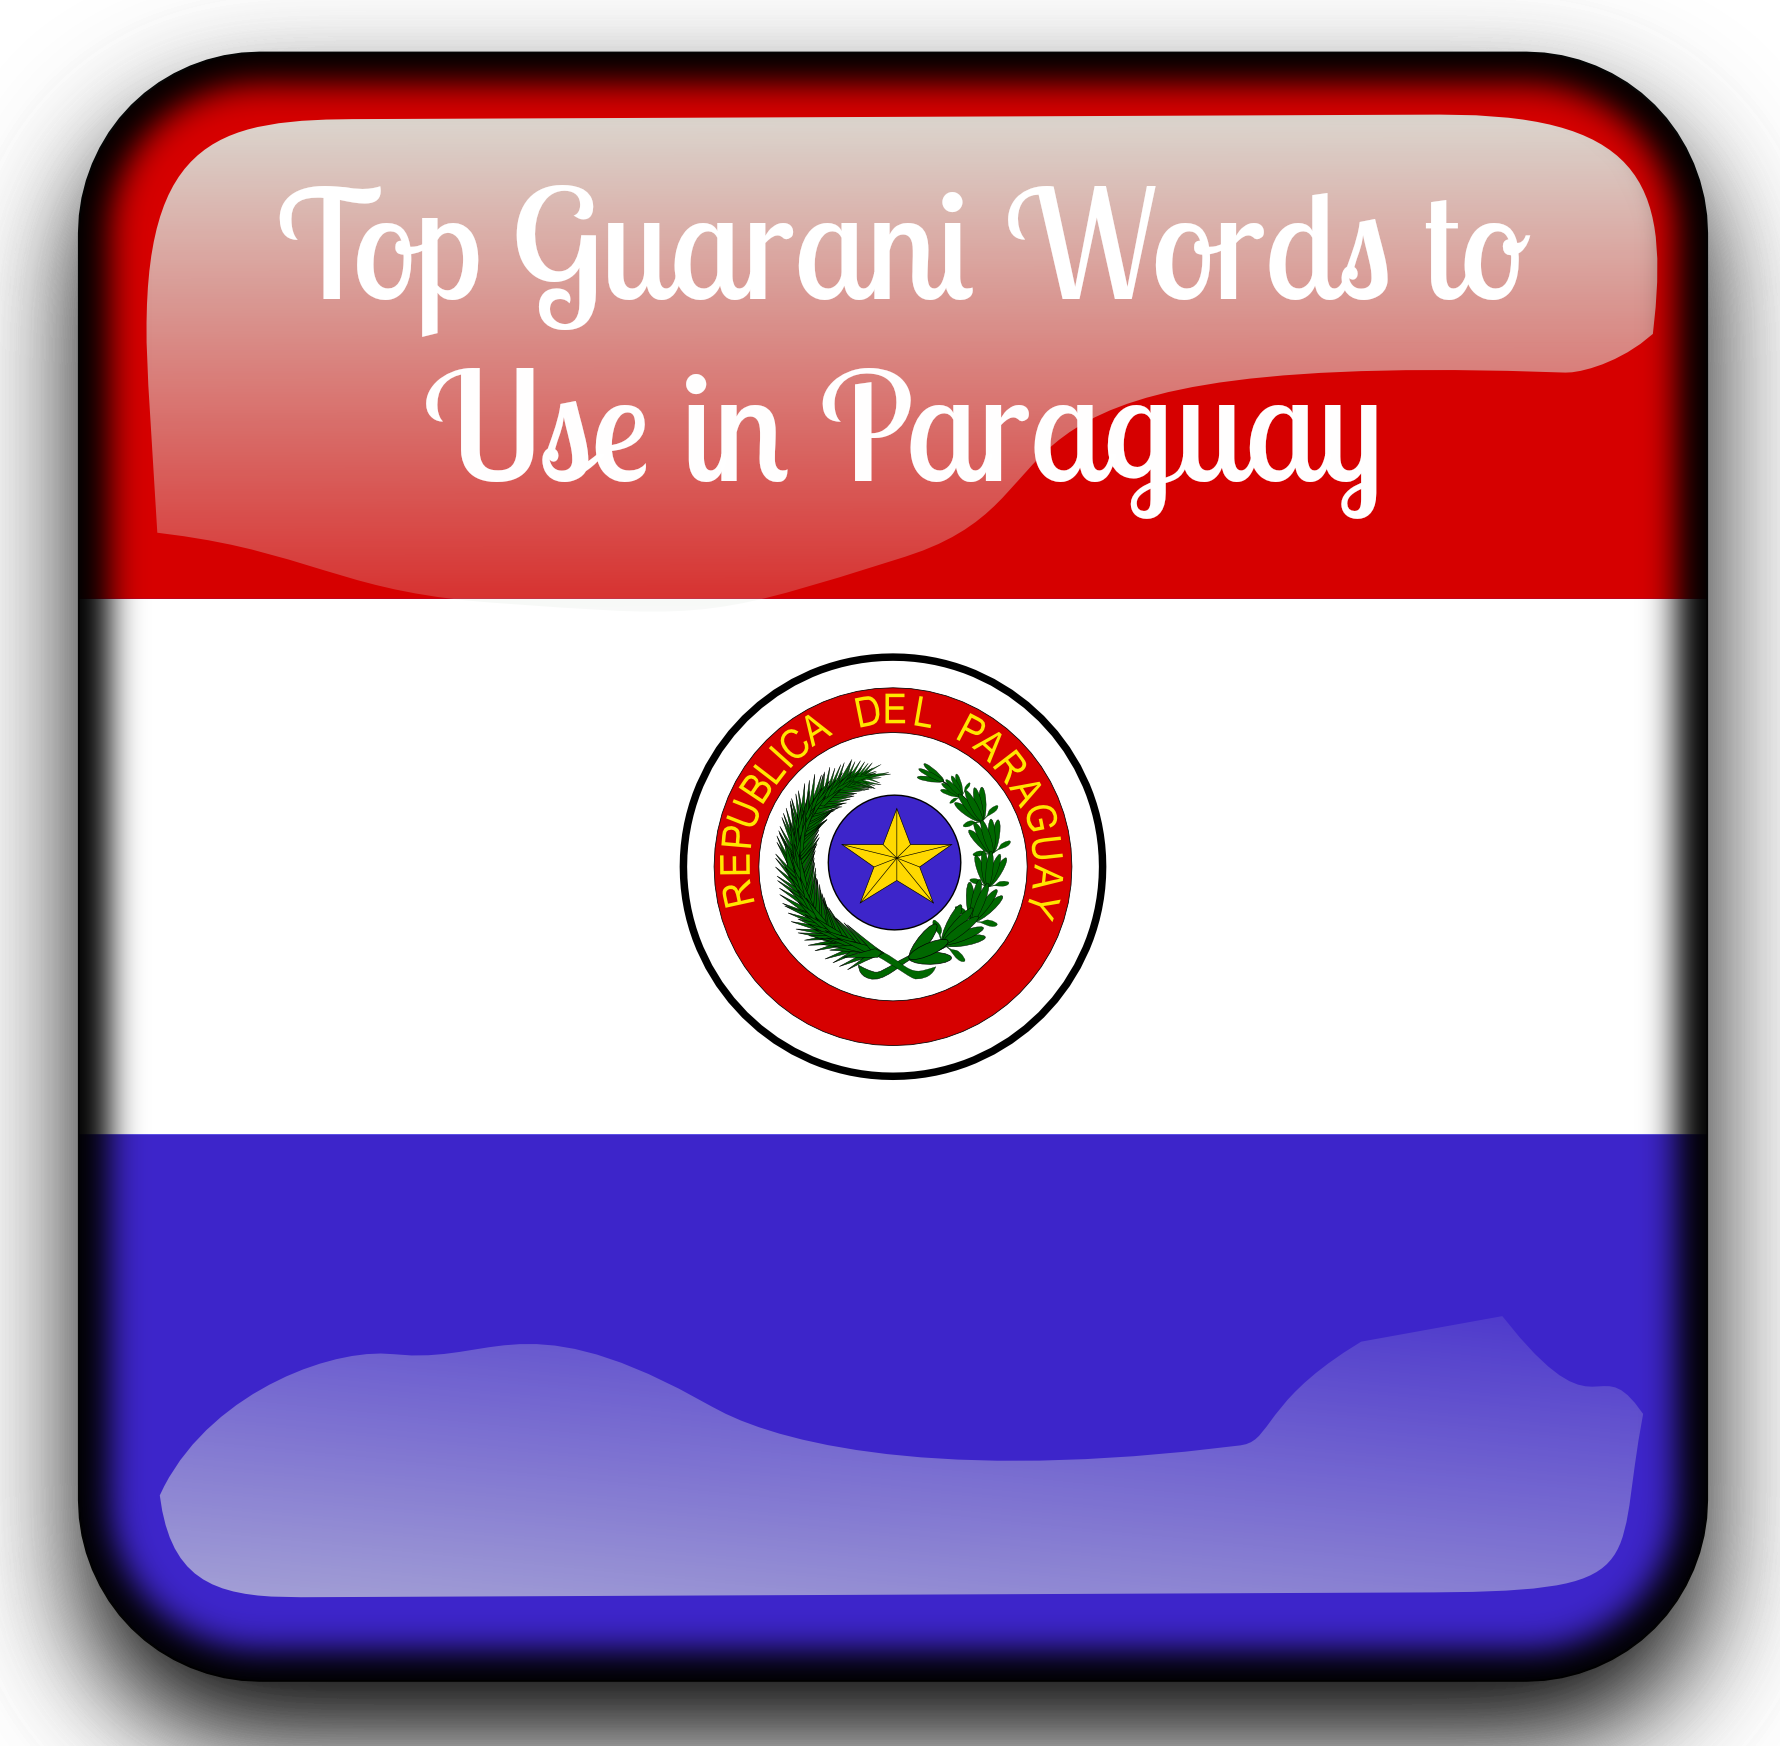 Top guarani words to use in paraguay throw in a guarani word paraguay and its history this is a book about the history and independence of the country paraguay reading levels fountas pinnell q lexile buycottarizona